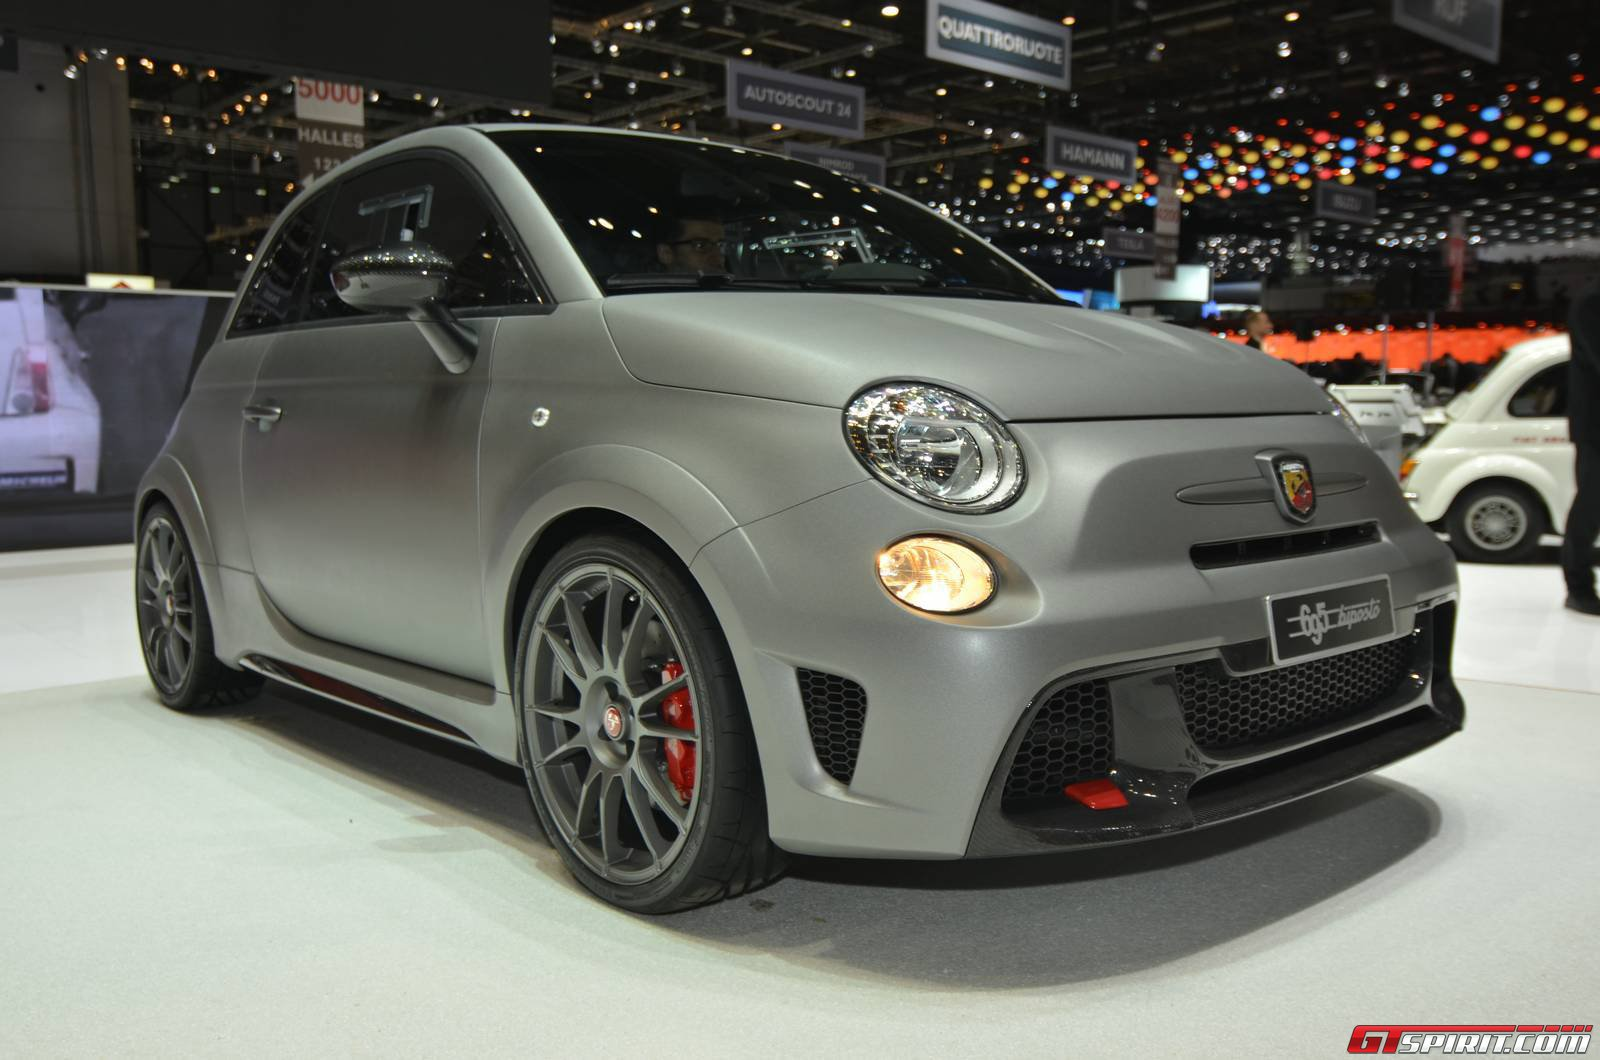 2017 Fiat 695 Abarth Biposto photo - 4